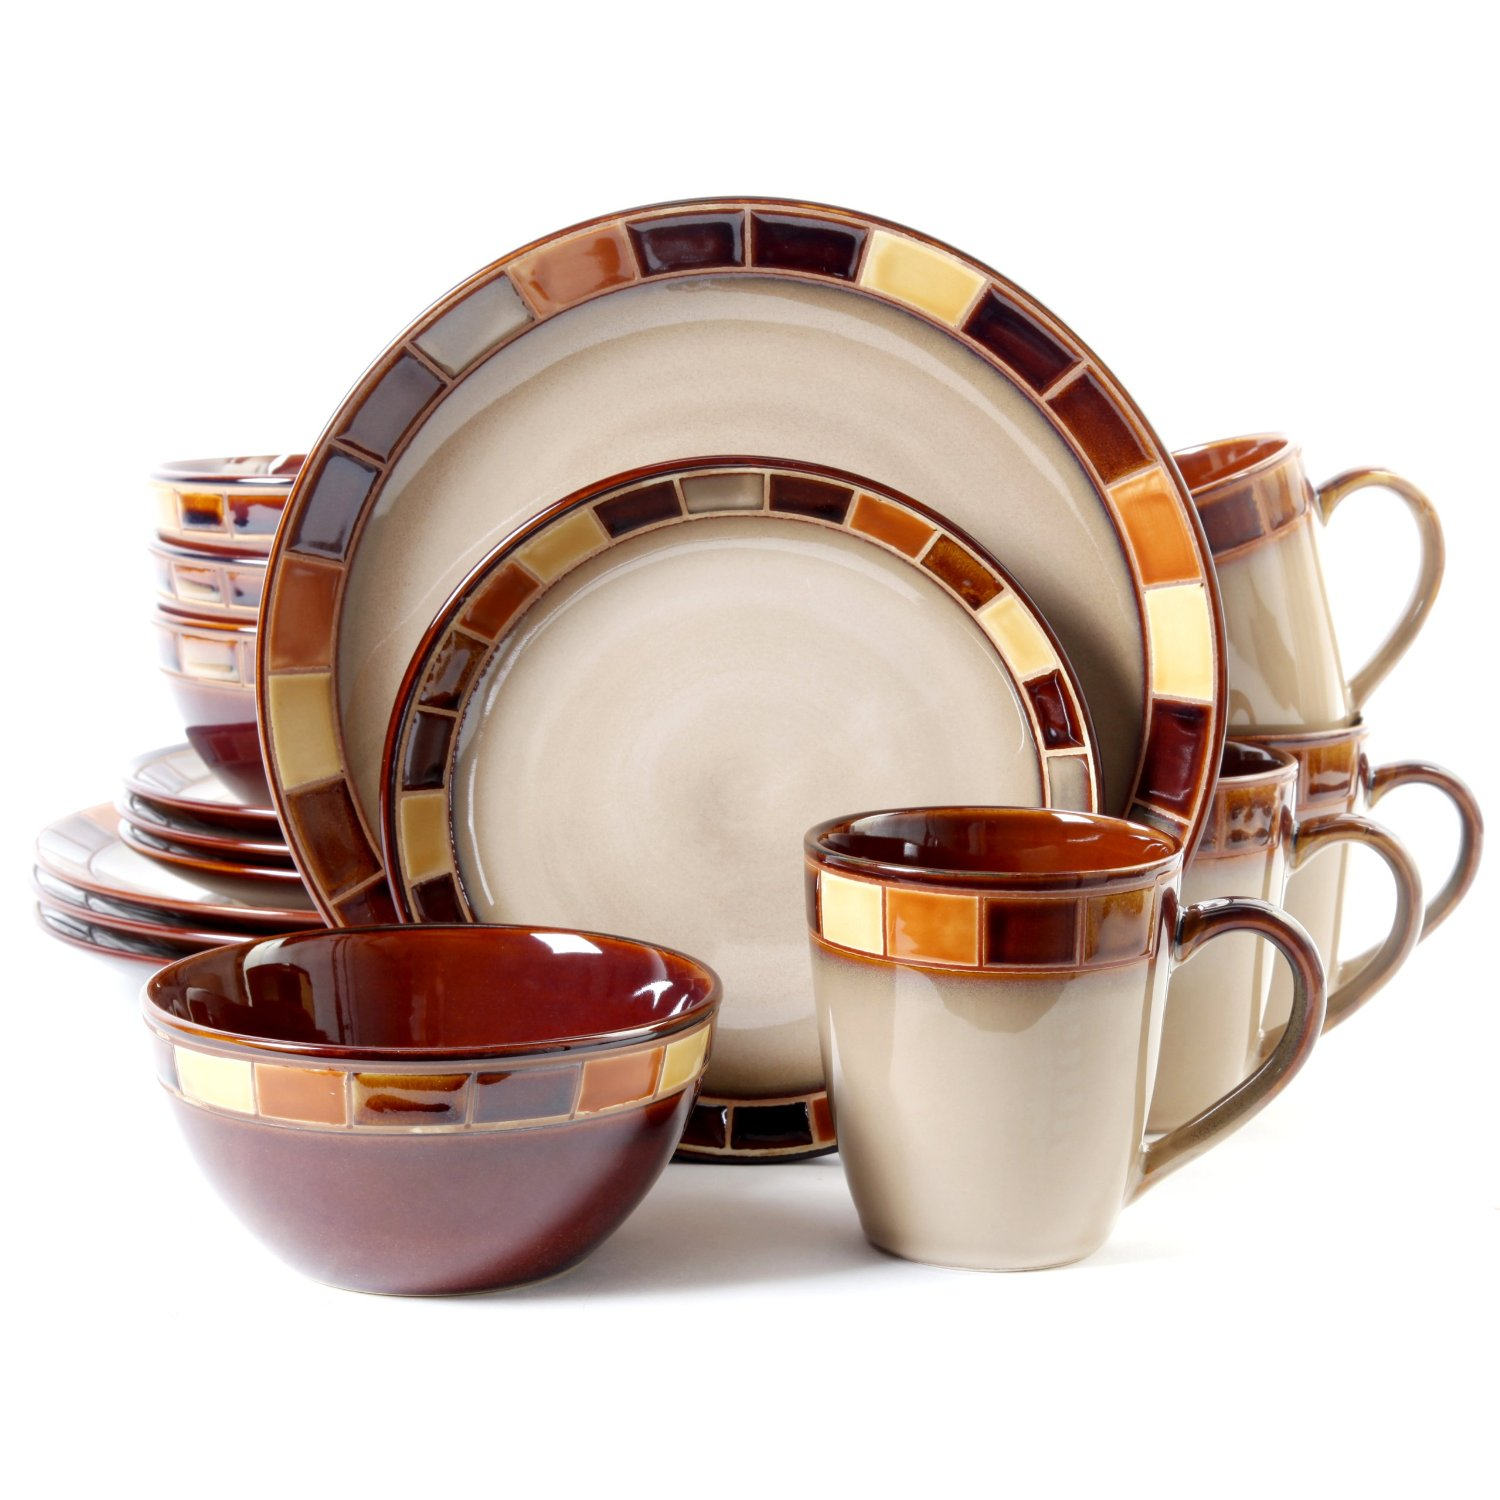 Top 10 Best Dinnerware Sets Reviews in 2018